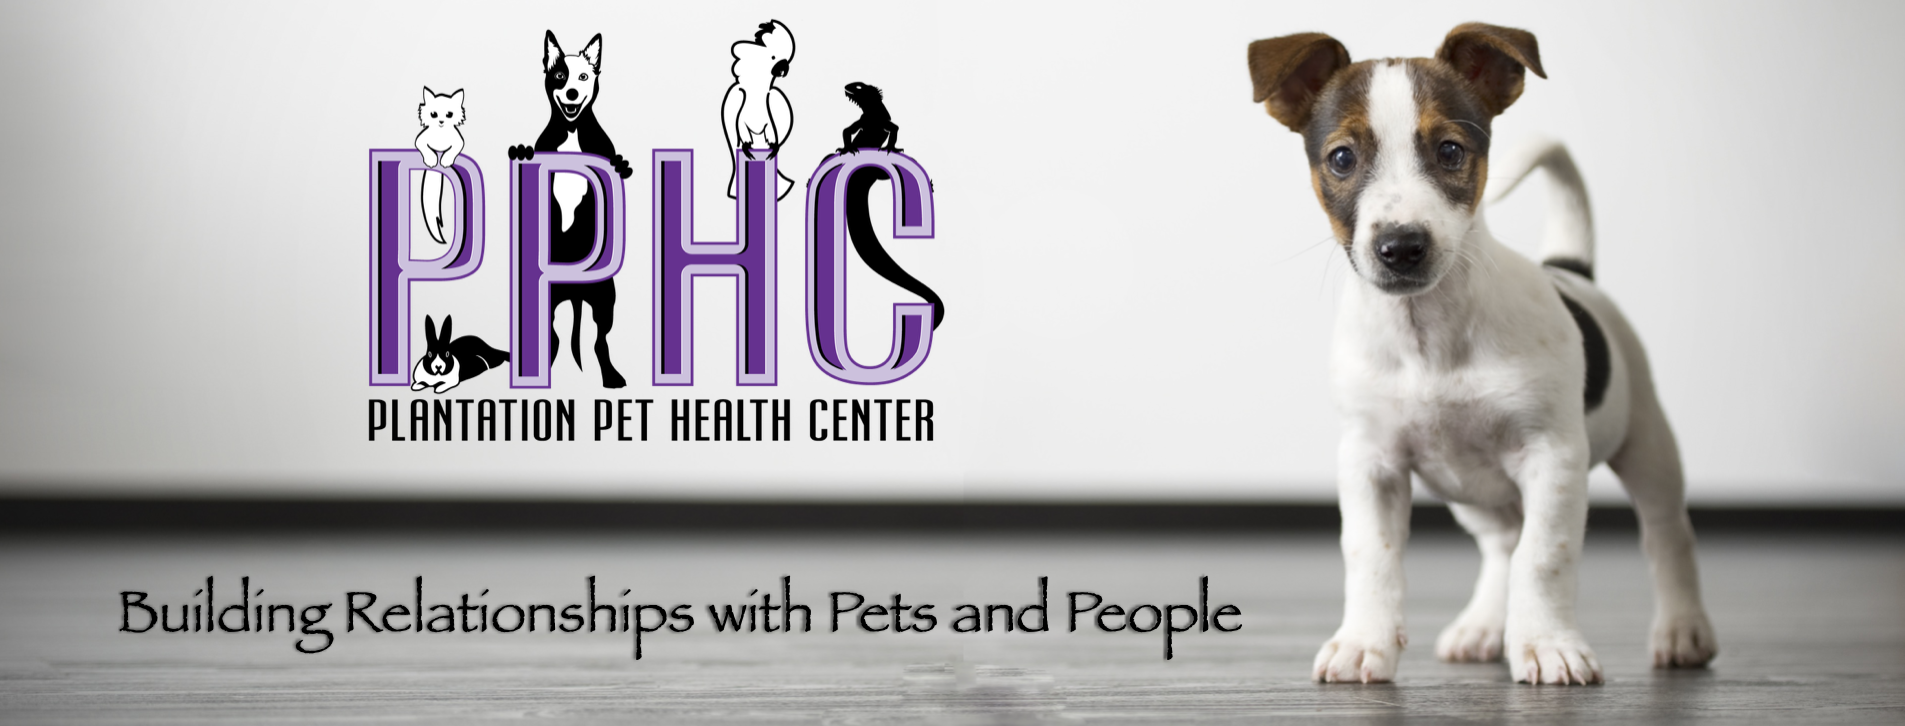 Plantation Pet Health Center (PPHC) Frisco Doc Martin